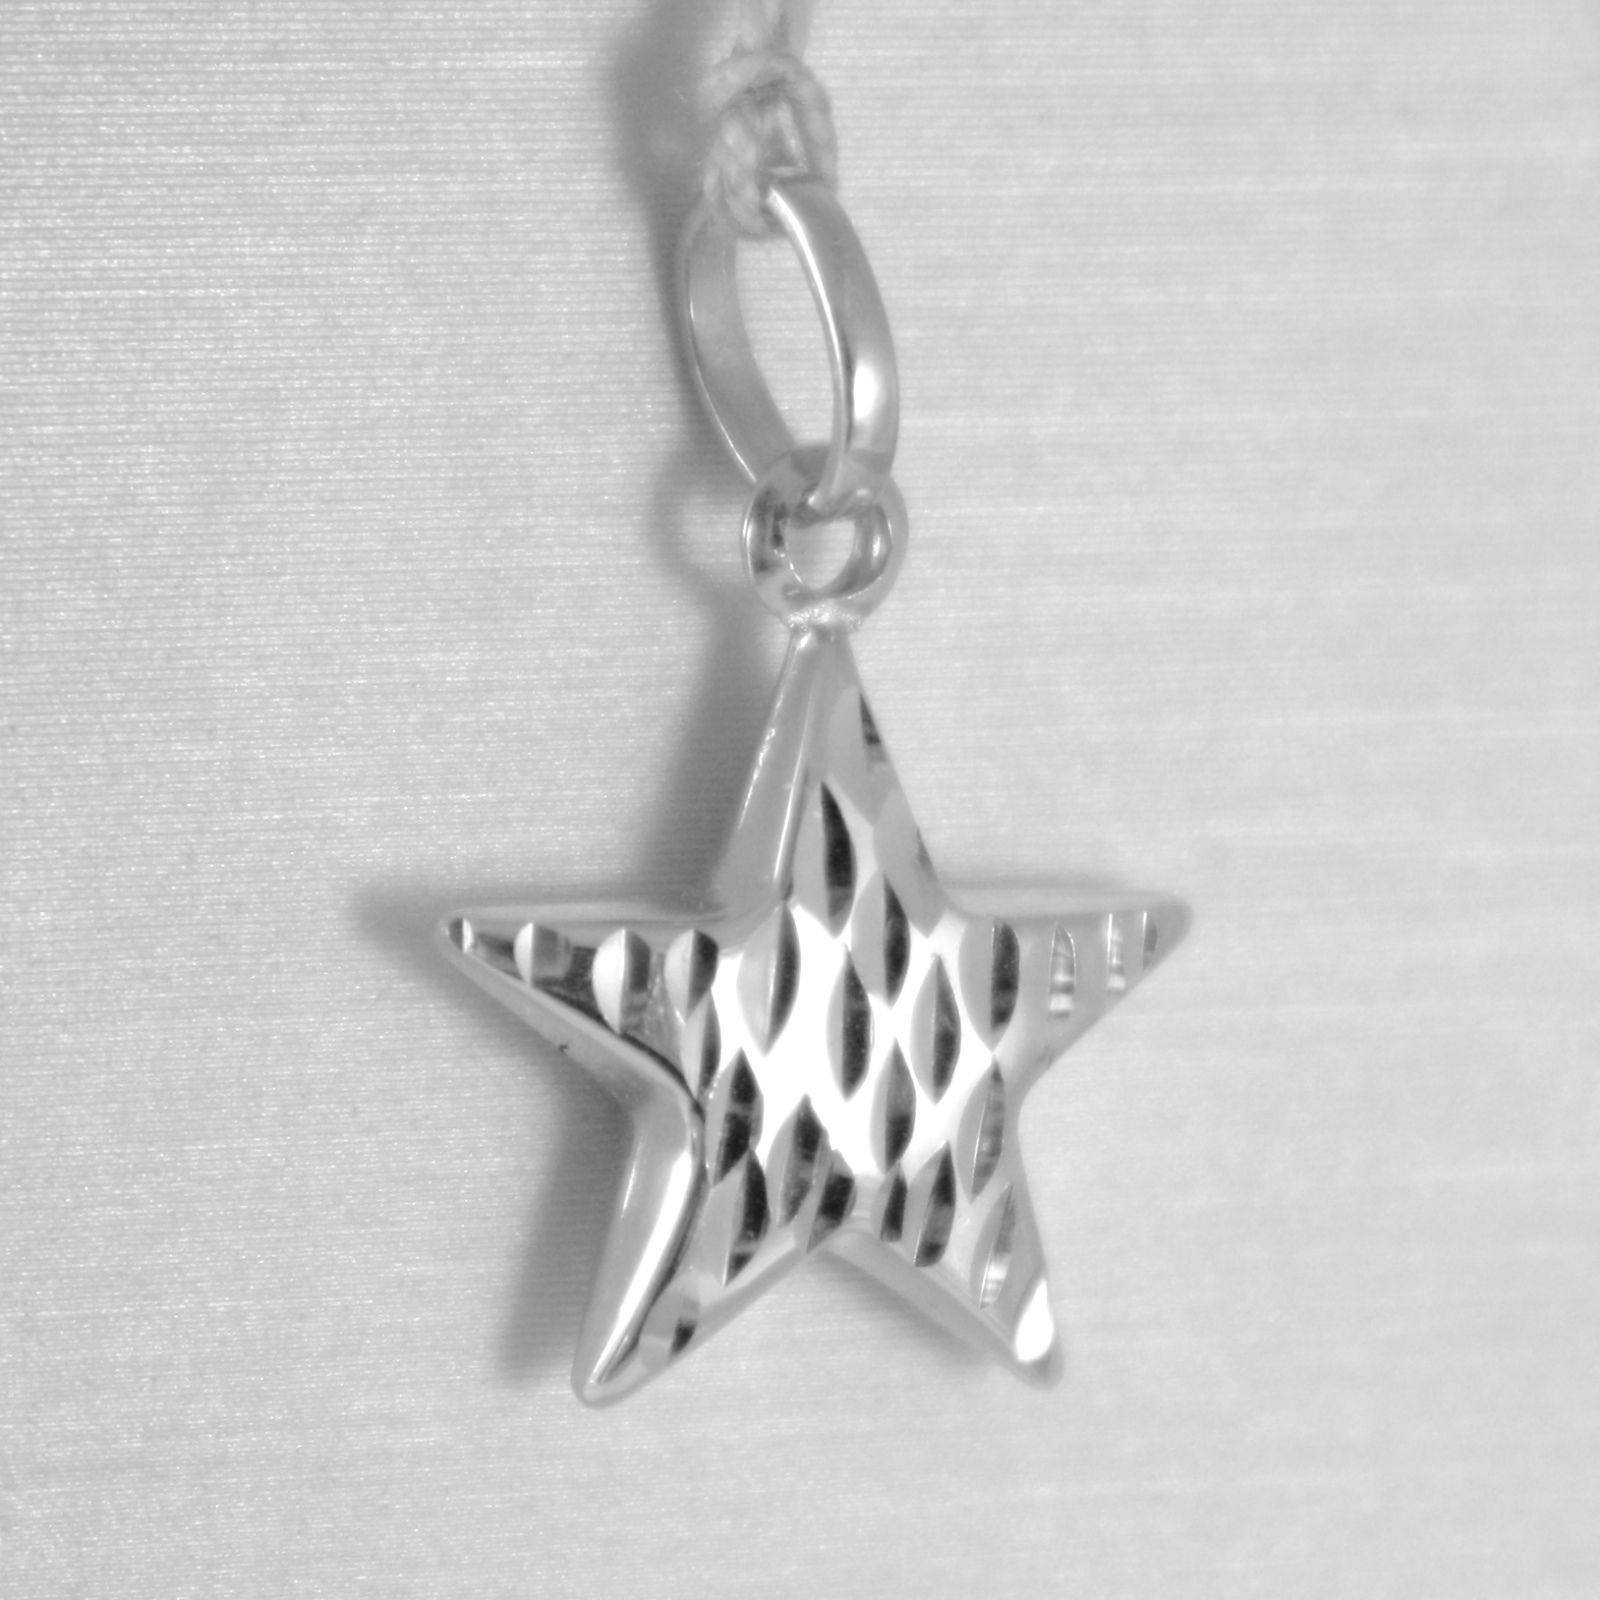 18K WHITE GOLD ROUNDED STAR PENDANT CHARM 20 MM WORKED & SMOOTH, MADE IN ITALY